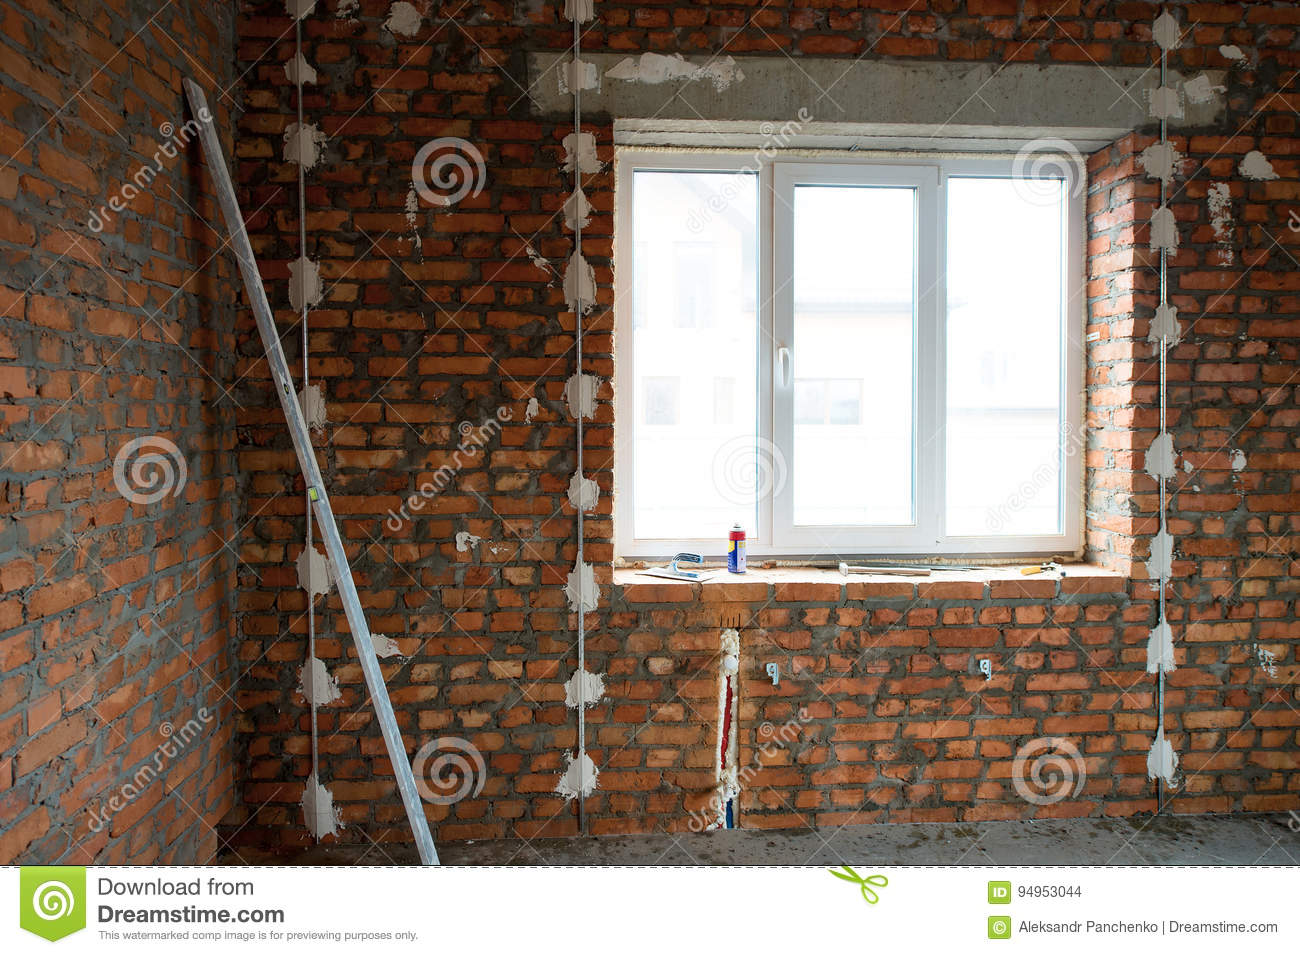 hight resolution of performed work on electrical wiring and installation of windows prepared the surface of brick walls to gypsum plaster